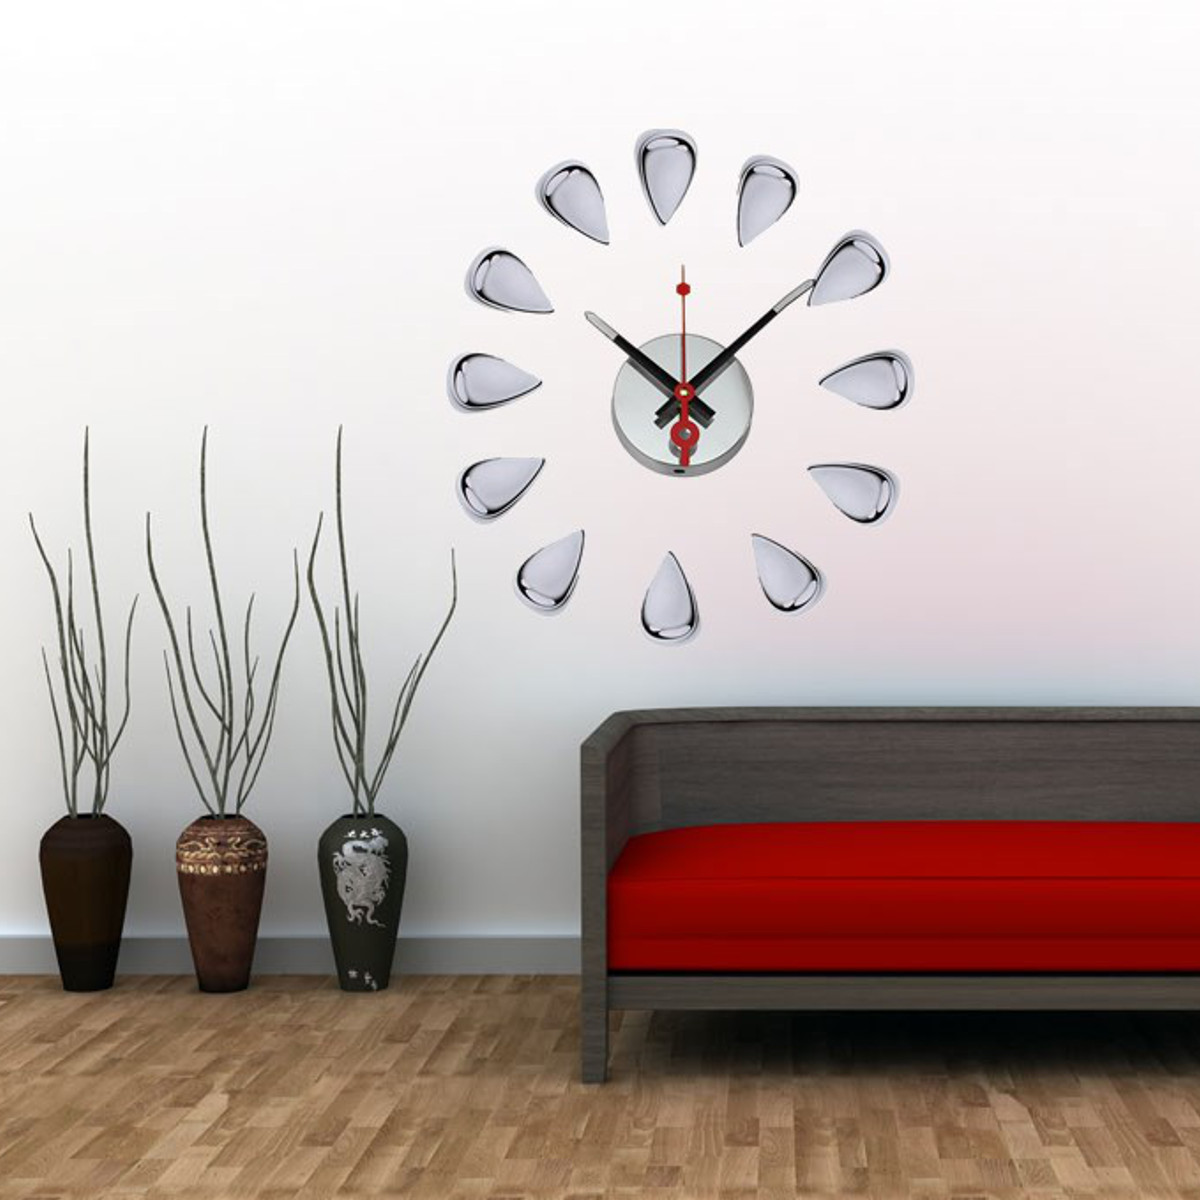 Modern acrylic mirror surface diy large wall clock sticker for 3d acrylic mirror wall sticker clock decoration decor